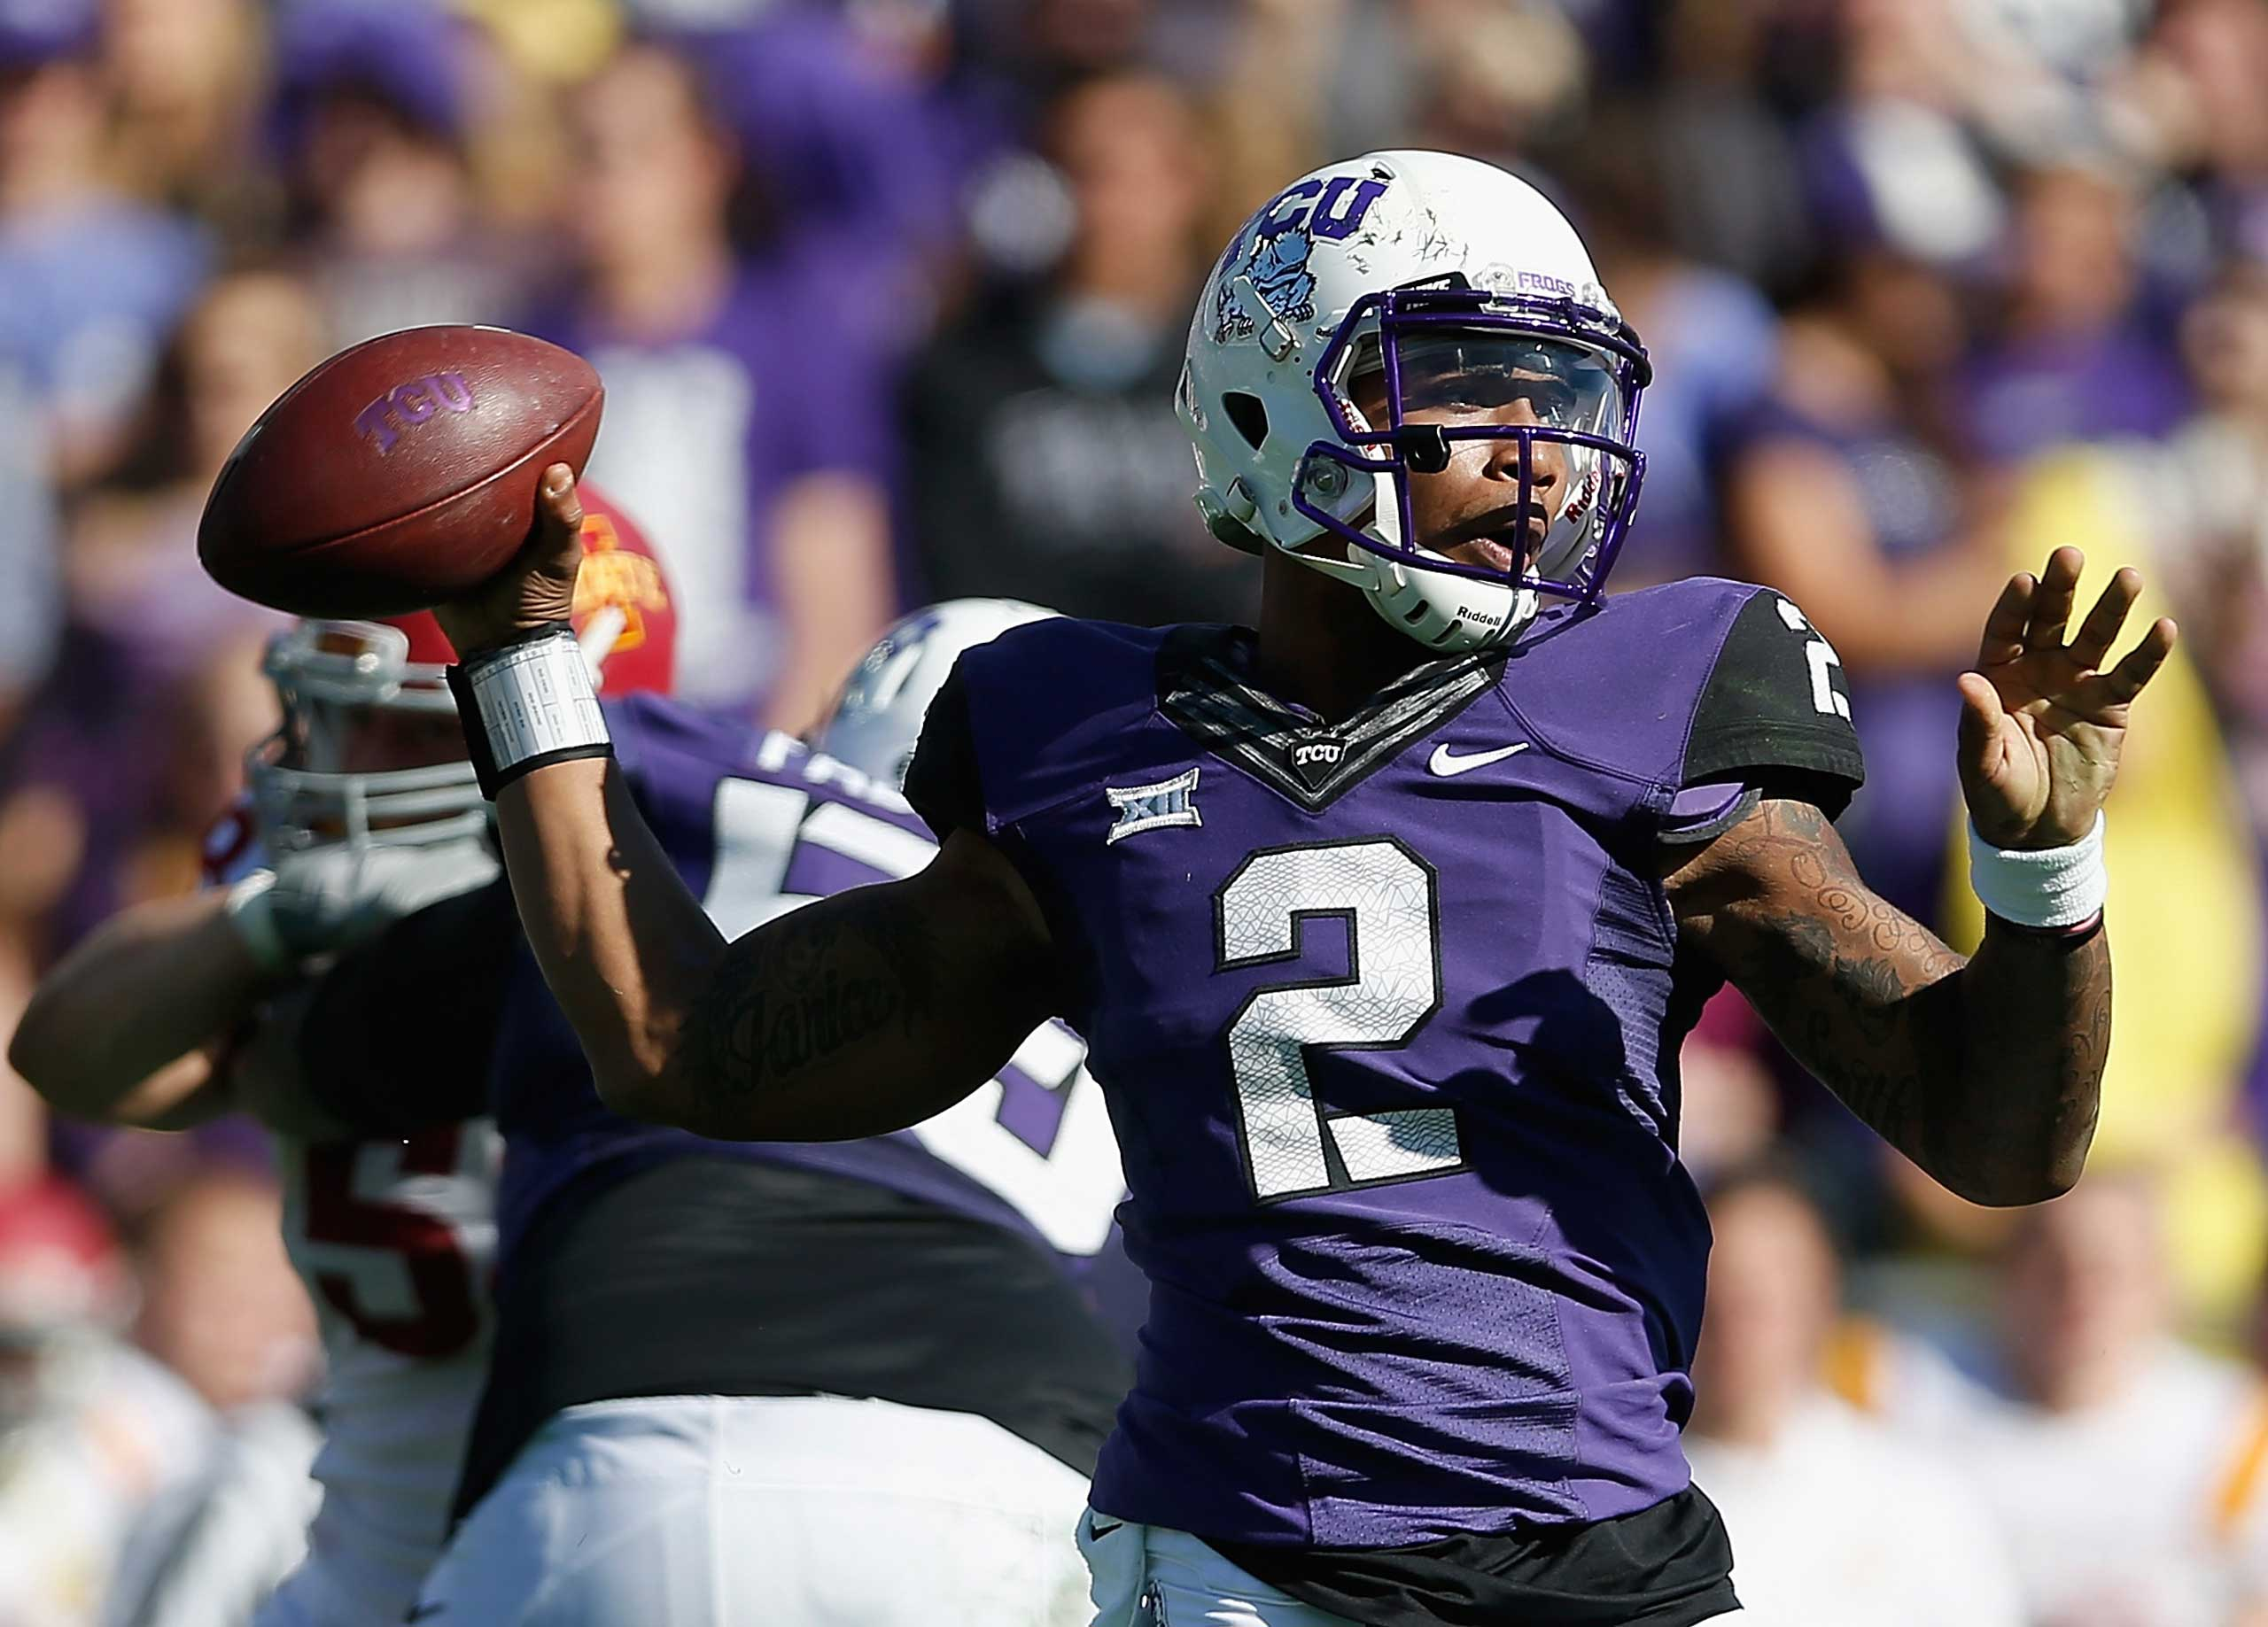 Texas Christian University Quarterback Trevone Boykin throws a pass during the thrid quarter of the Big 12 college football game against the Iowa State Cyclones at Amon G. Carter Stadium on Dec. 6, 2014 in Fort Worth, Texas.